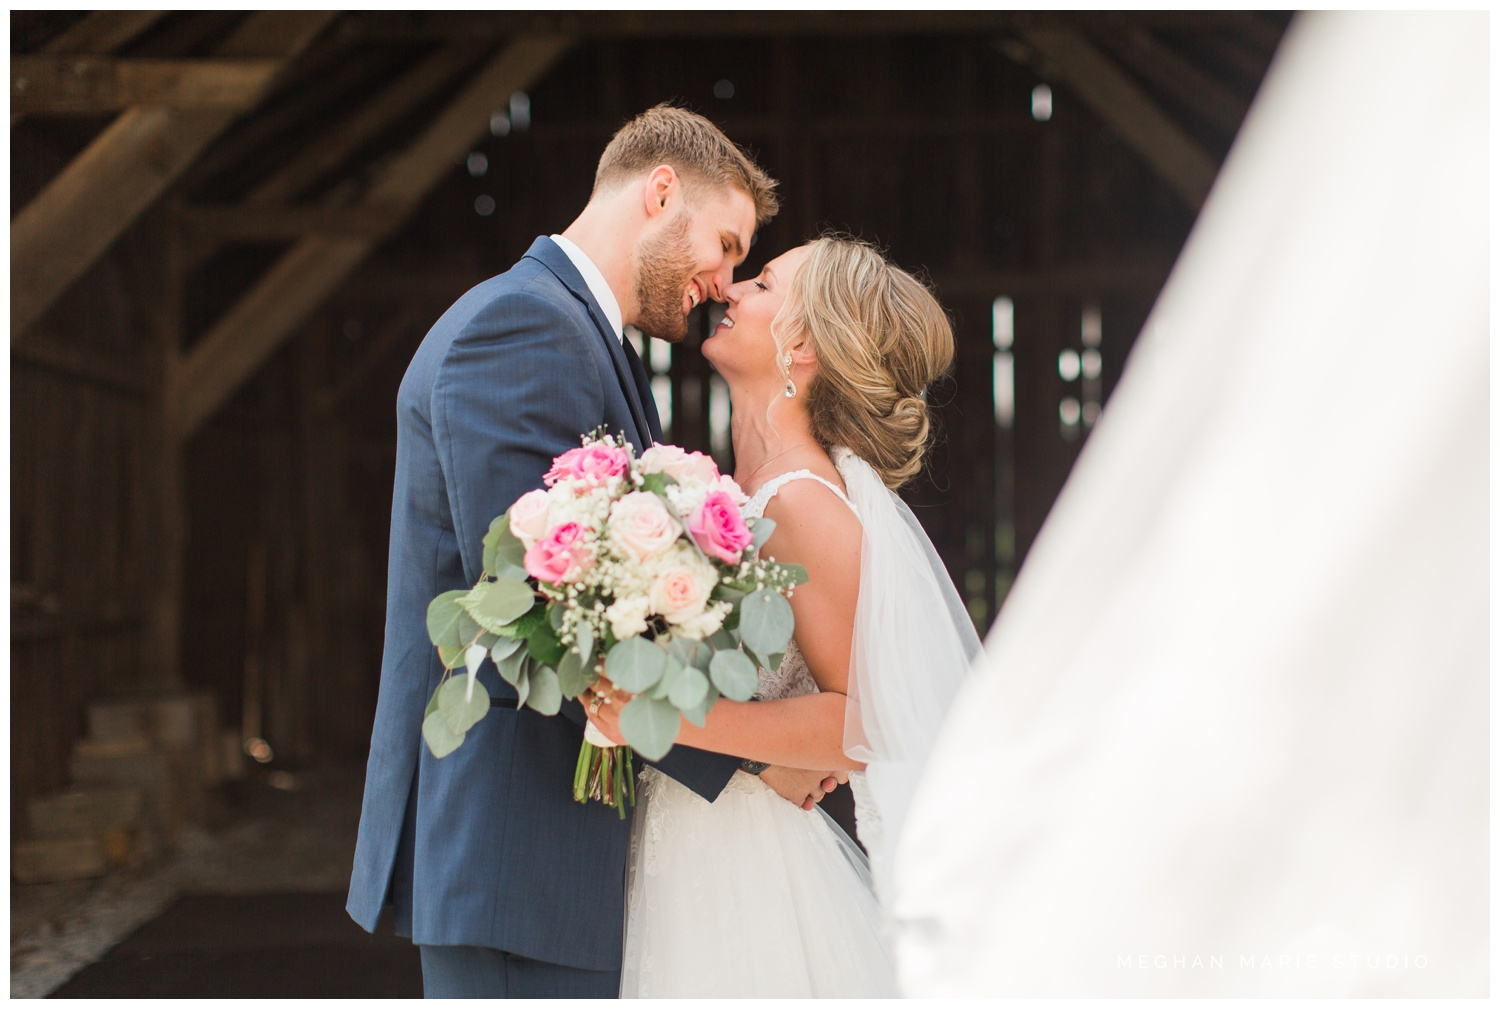 meghan marie studio ohio wedding kyle ahrens msu michigan state basketball spartans navy blush rustic barn soft warm bright bubbles catholic church_0385.jpg